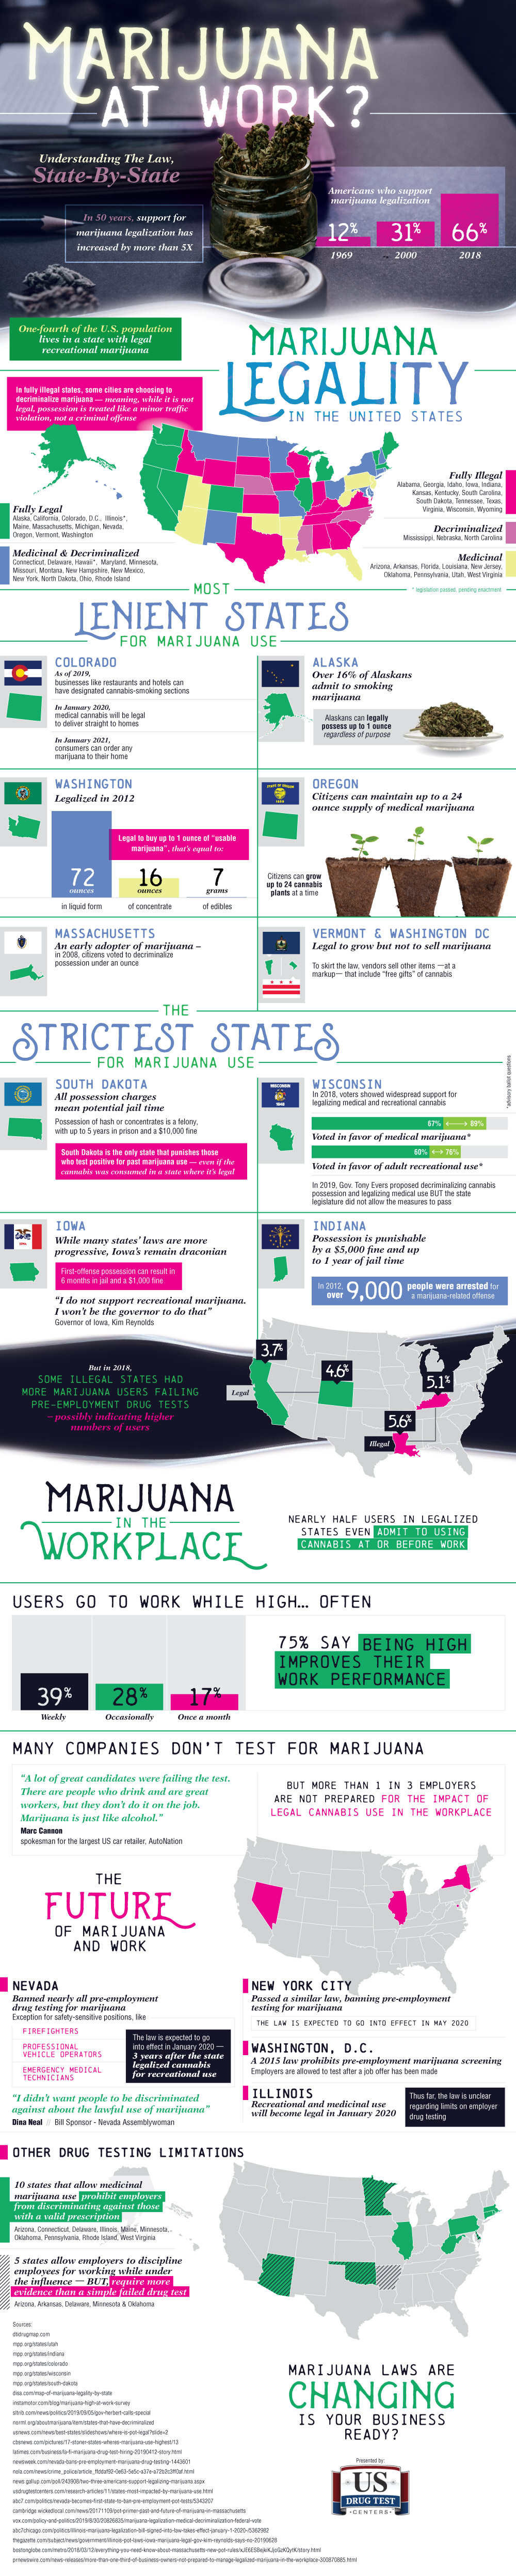 infographic of marijuana laws for ever state